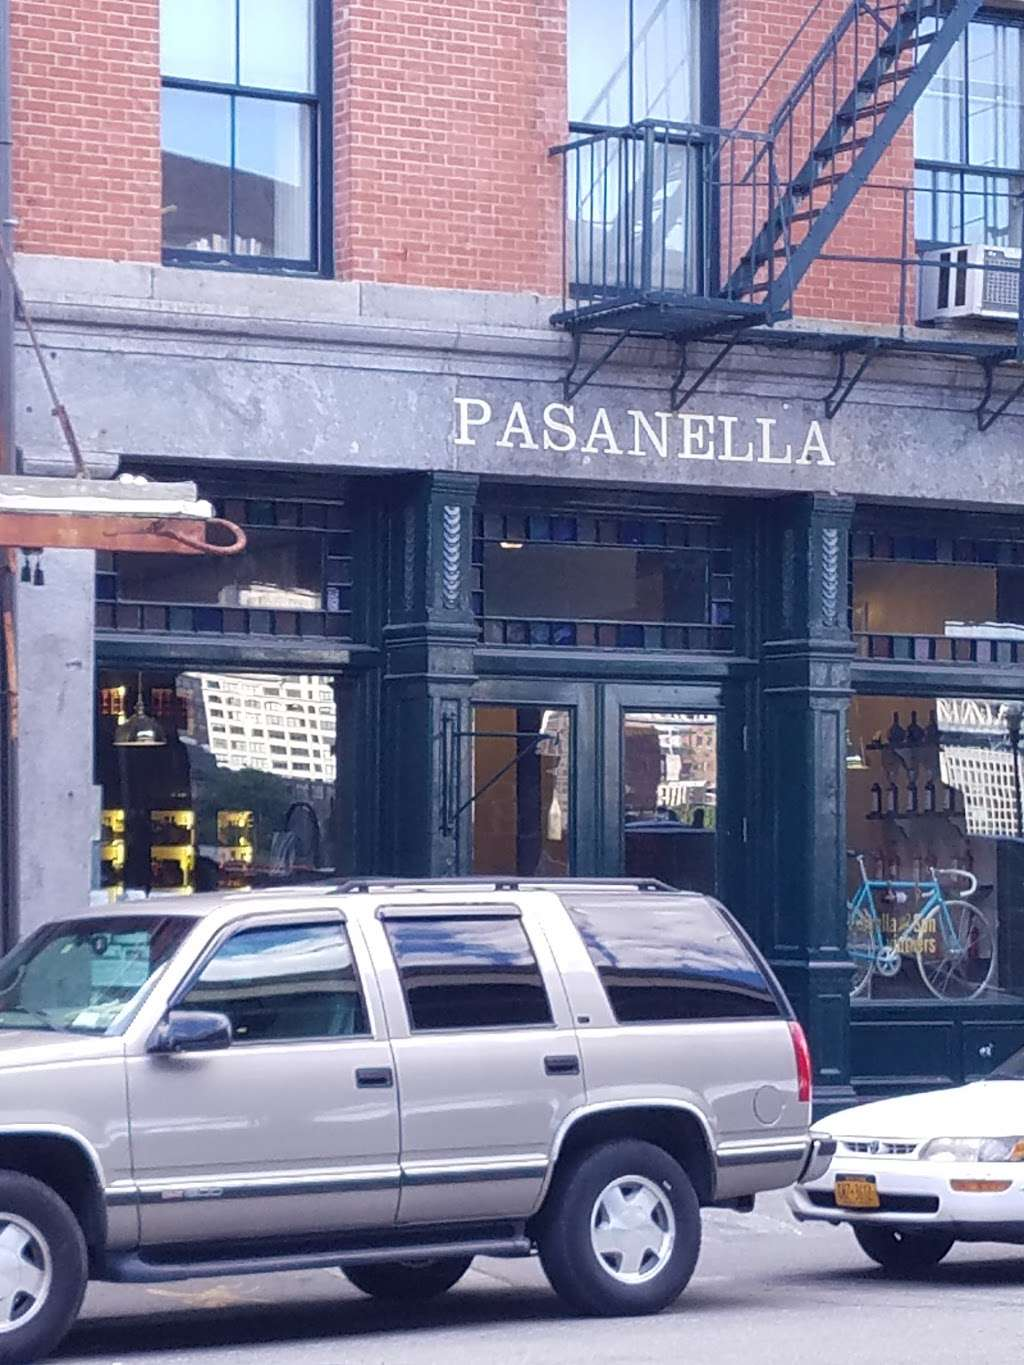 Pasanella & Son Vintners - store  | Photo 9 of 10 | Address: 115 South St, New York, NY 10038, USA | Phone: (212) 233-8383